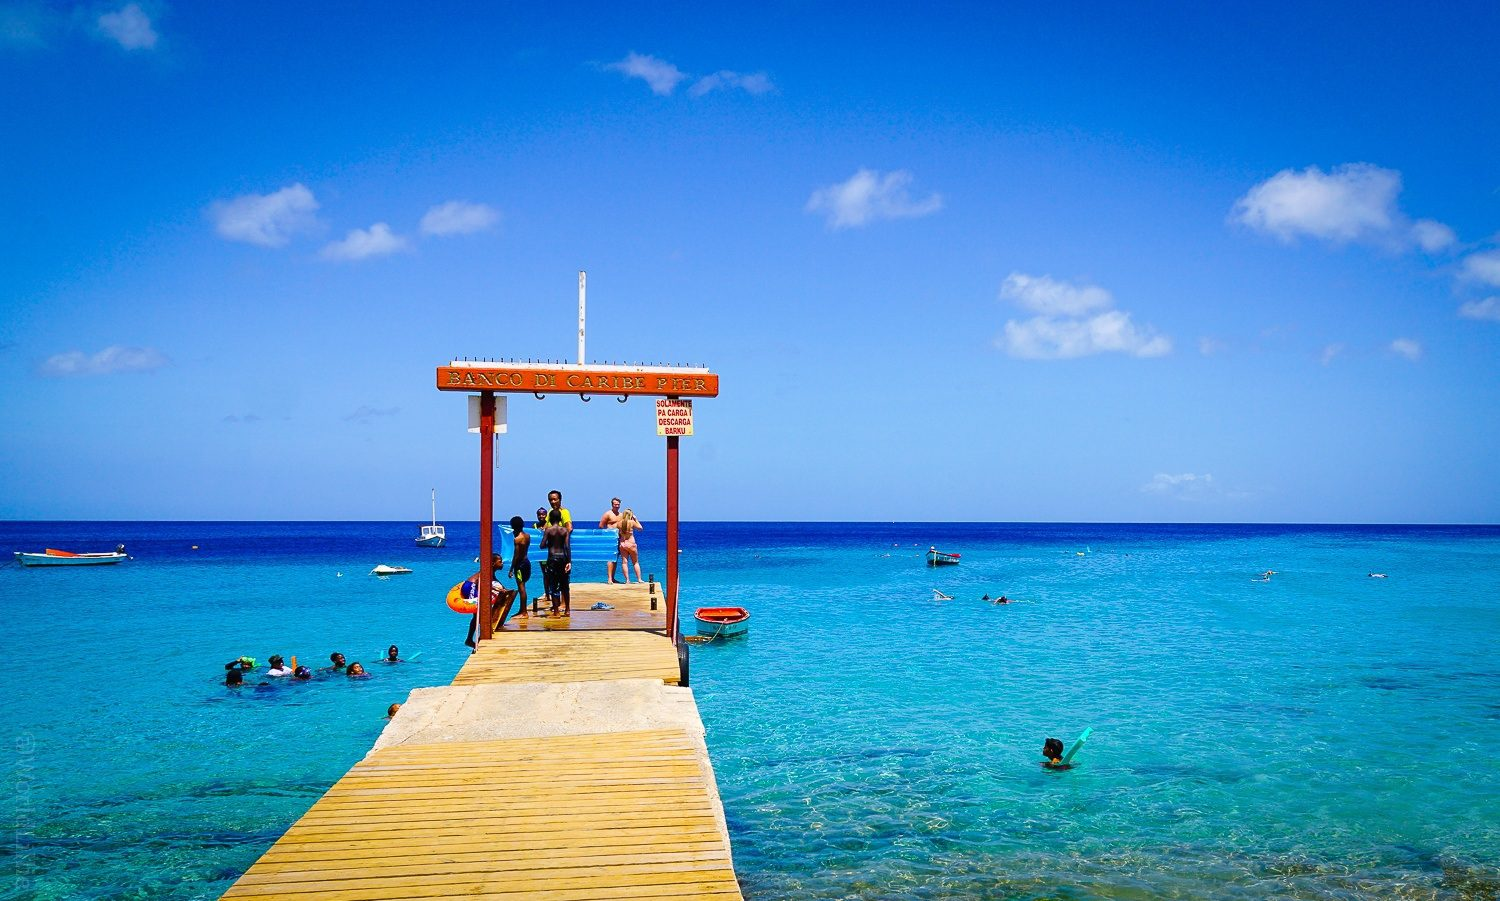 Every ethnicity and skin tone is represented in Curaçao!